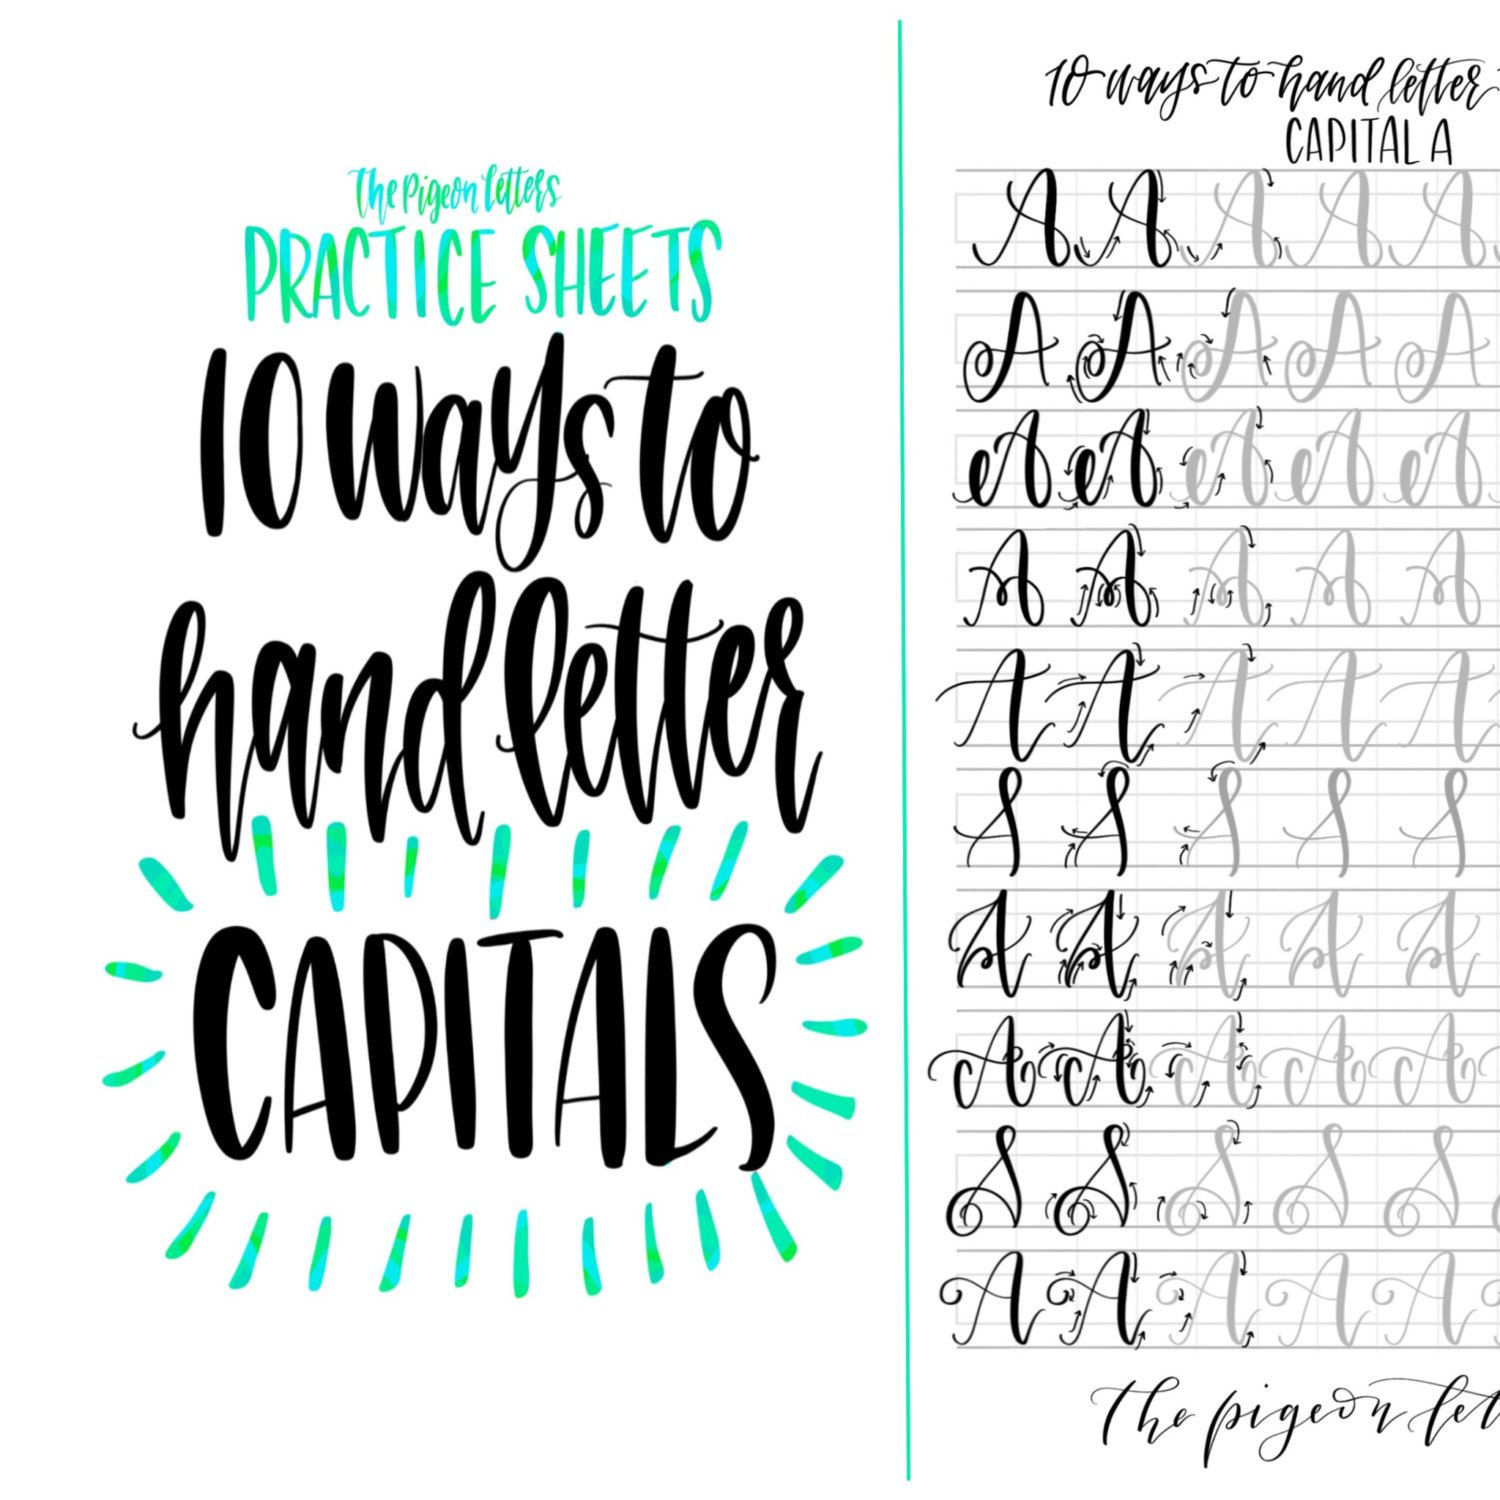 10 Styles To Letter The Uppercase Alphabet Lettering Etsy Lettering Practice Hand Lettering Practice Sheets Hand Lettering Practice